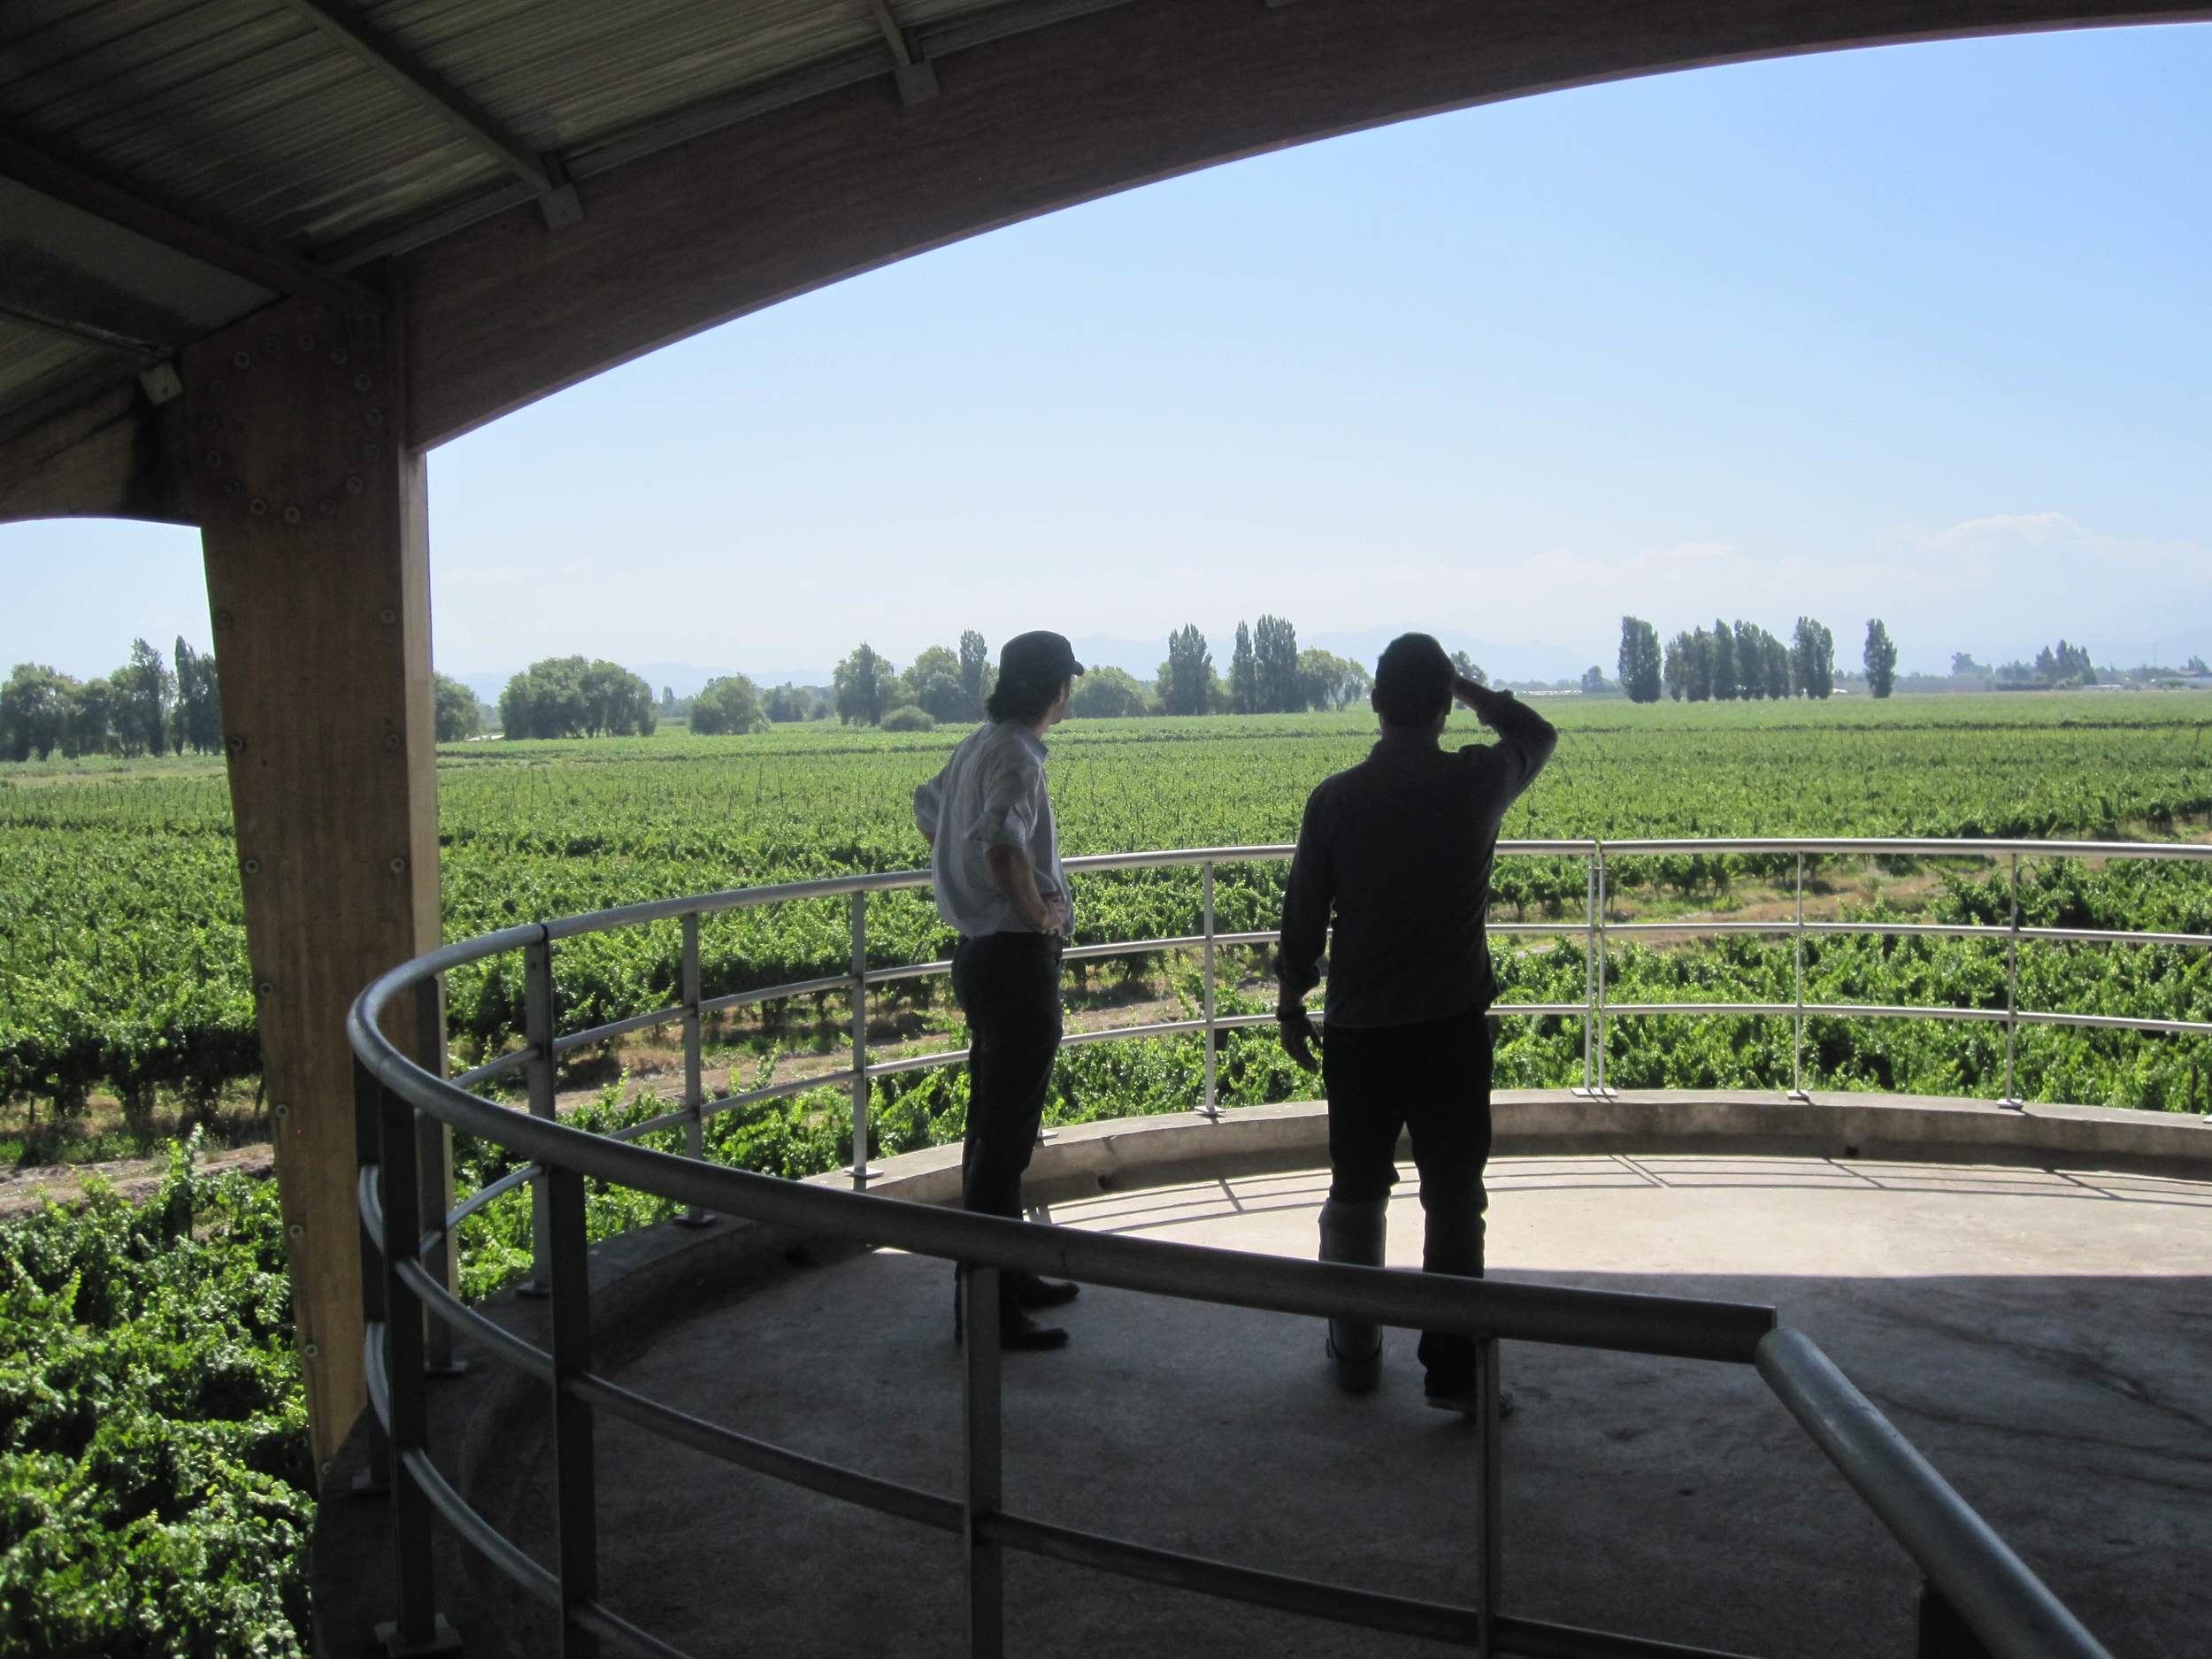 Julio (right) in early 2015 visiting the Alta Cima winery, a family-run operation in Curicó, Chile.